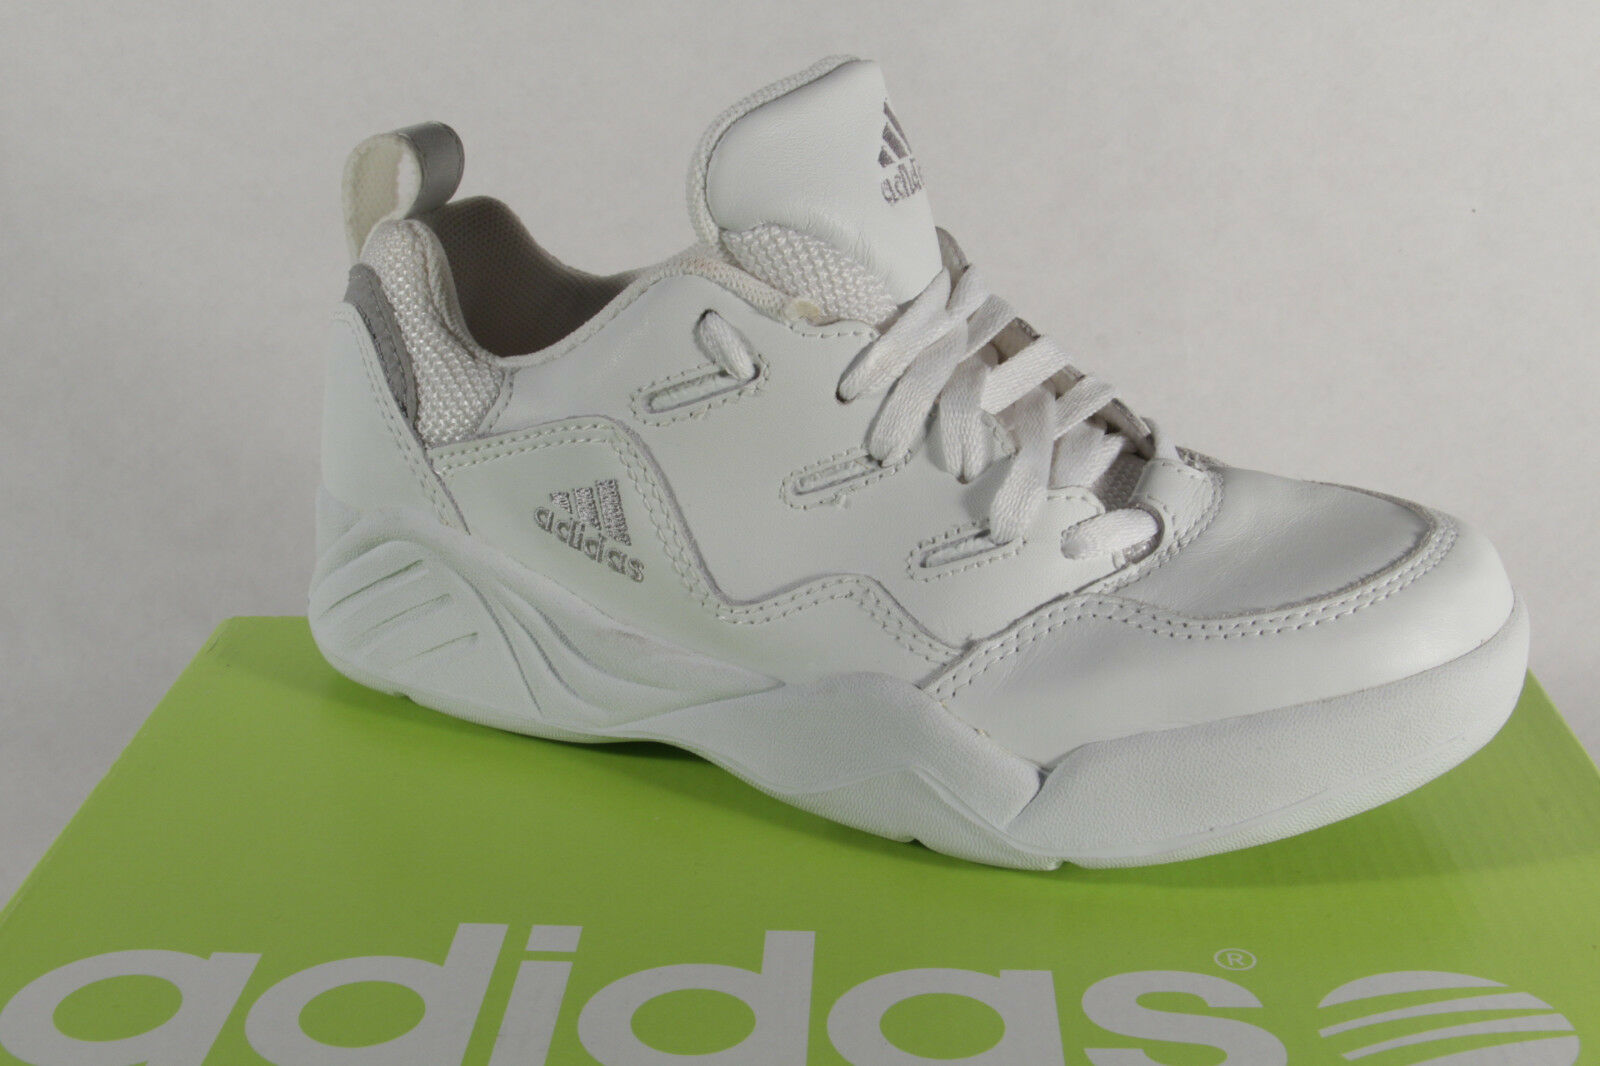 Adidas Tennis shoes Lace up Trainers Real Leather White New